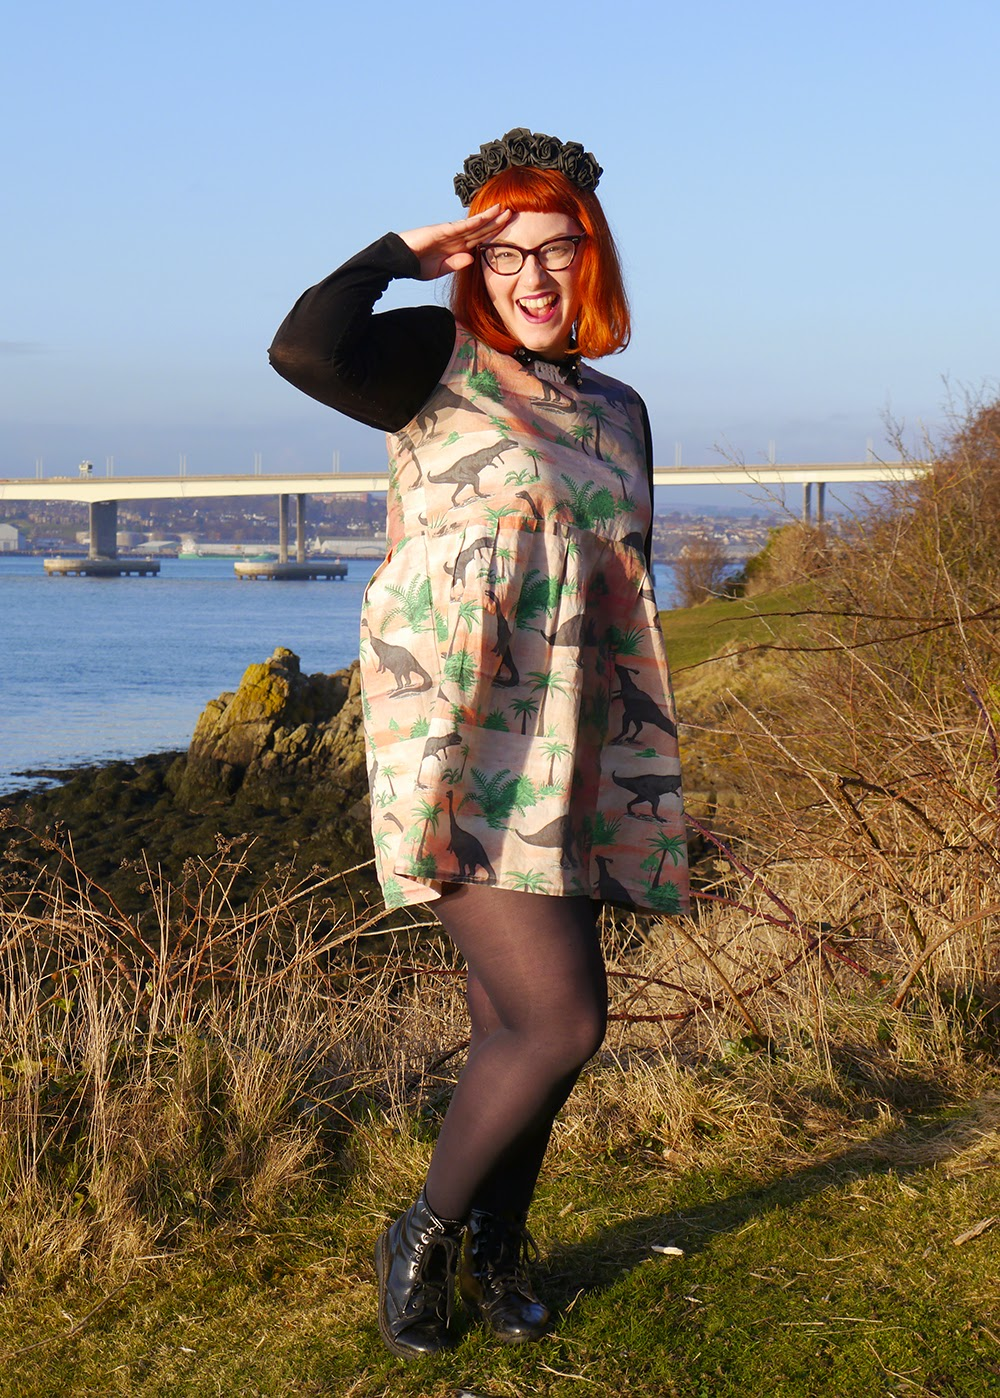 What Helen Wore, Valentine's Day, Adventures, Scottish Blogger, Crown and Glory Black Flower Headband, Bonnie Bling Scottish Sland Necklace, Vintage Style Me Dinosaur Dress, H & M Shirt